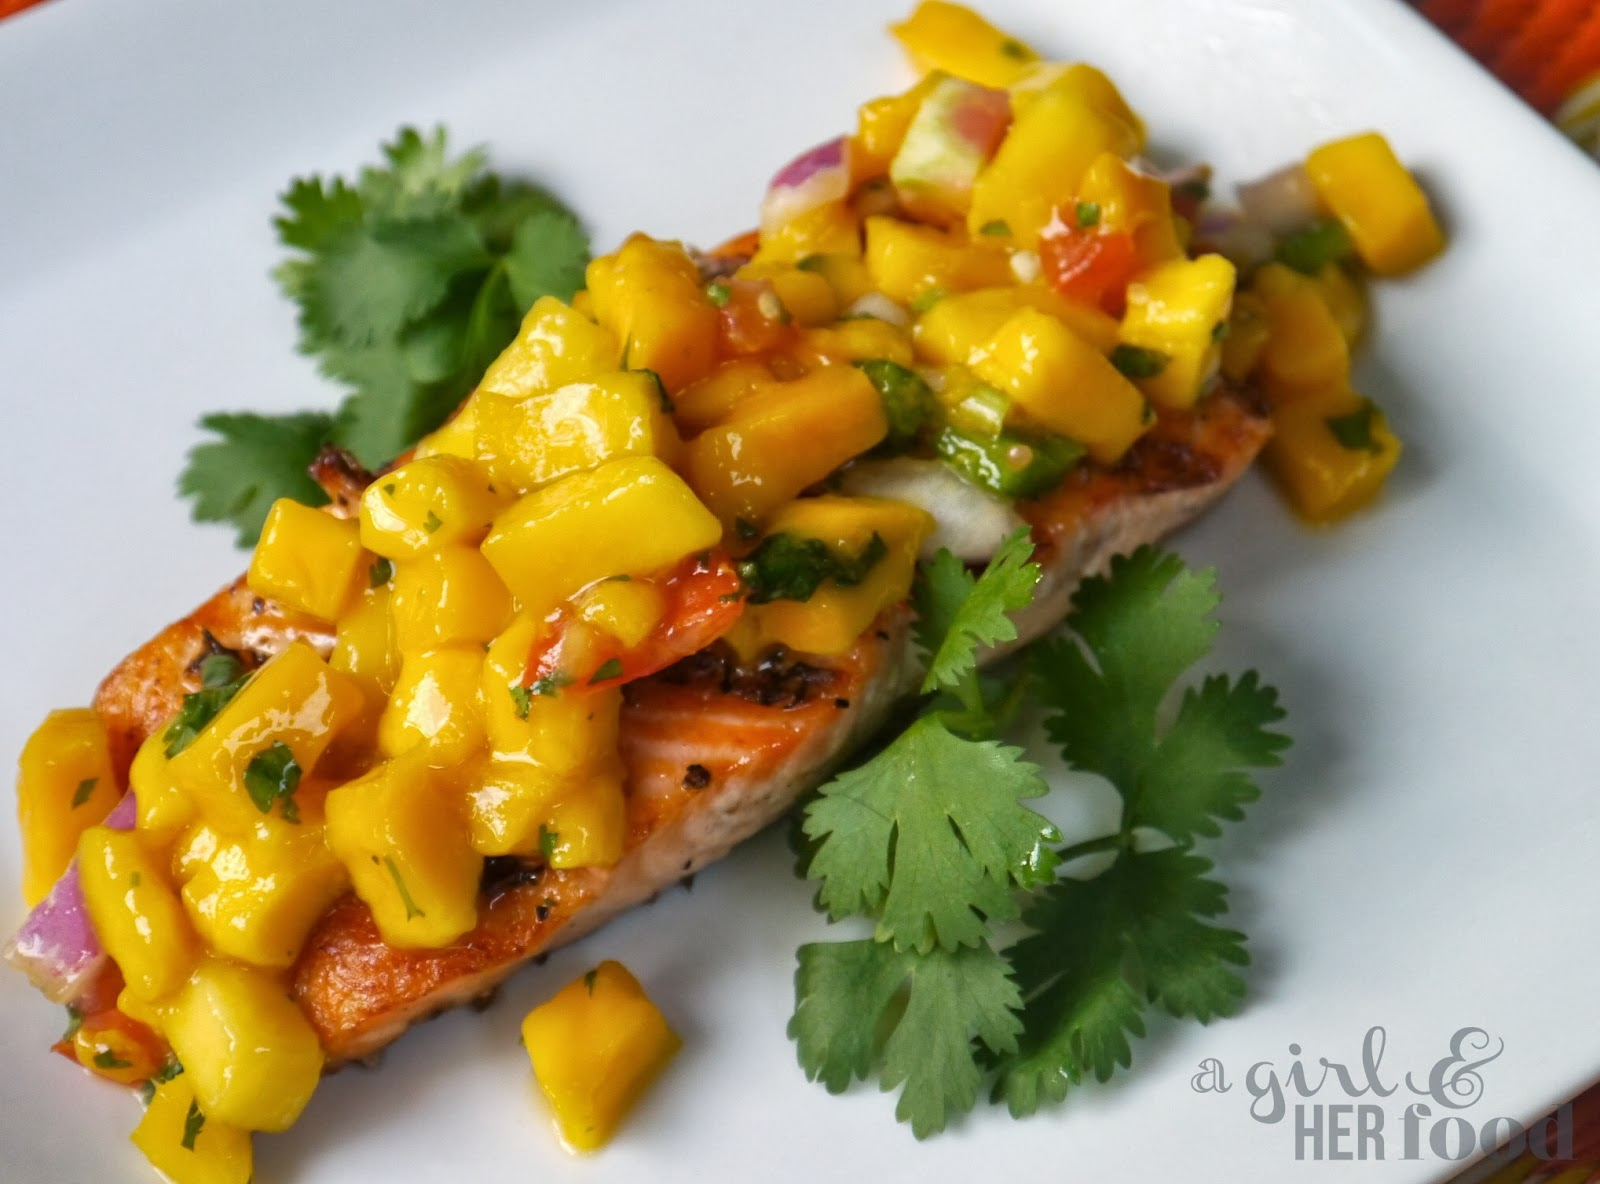 A Girl & Her Food: Grilled Salmon with Mango Salsa